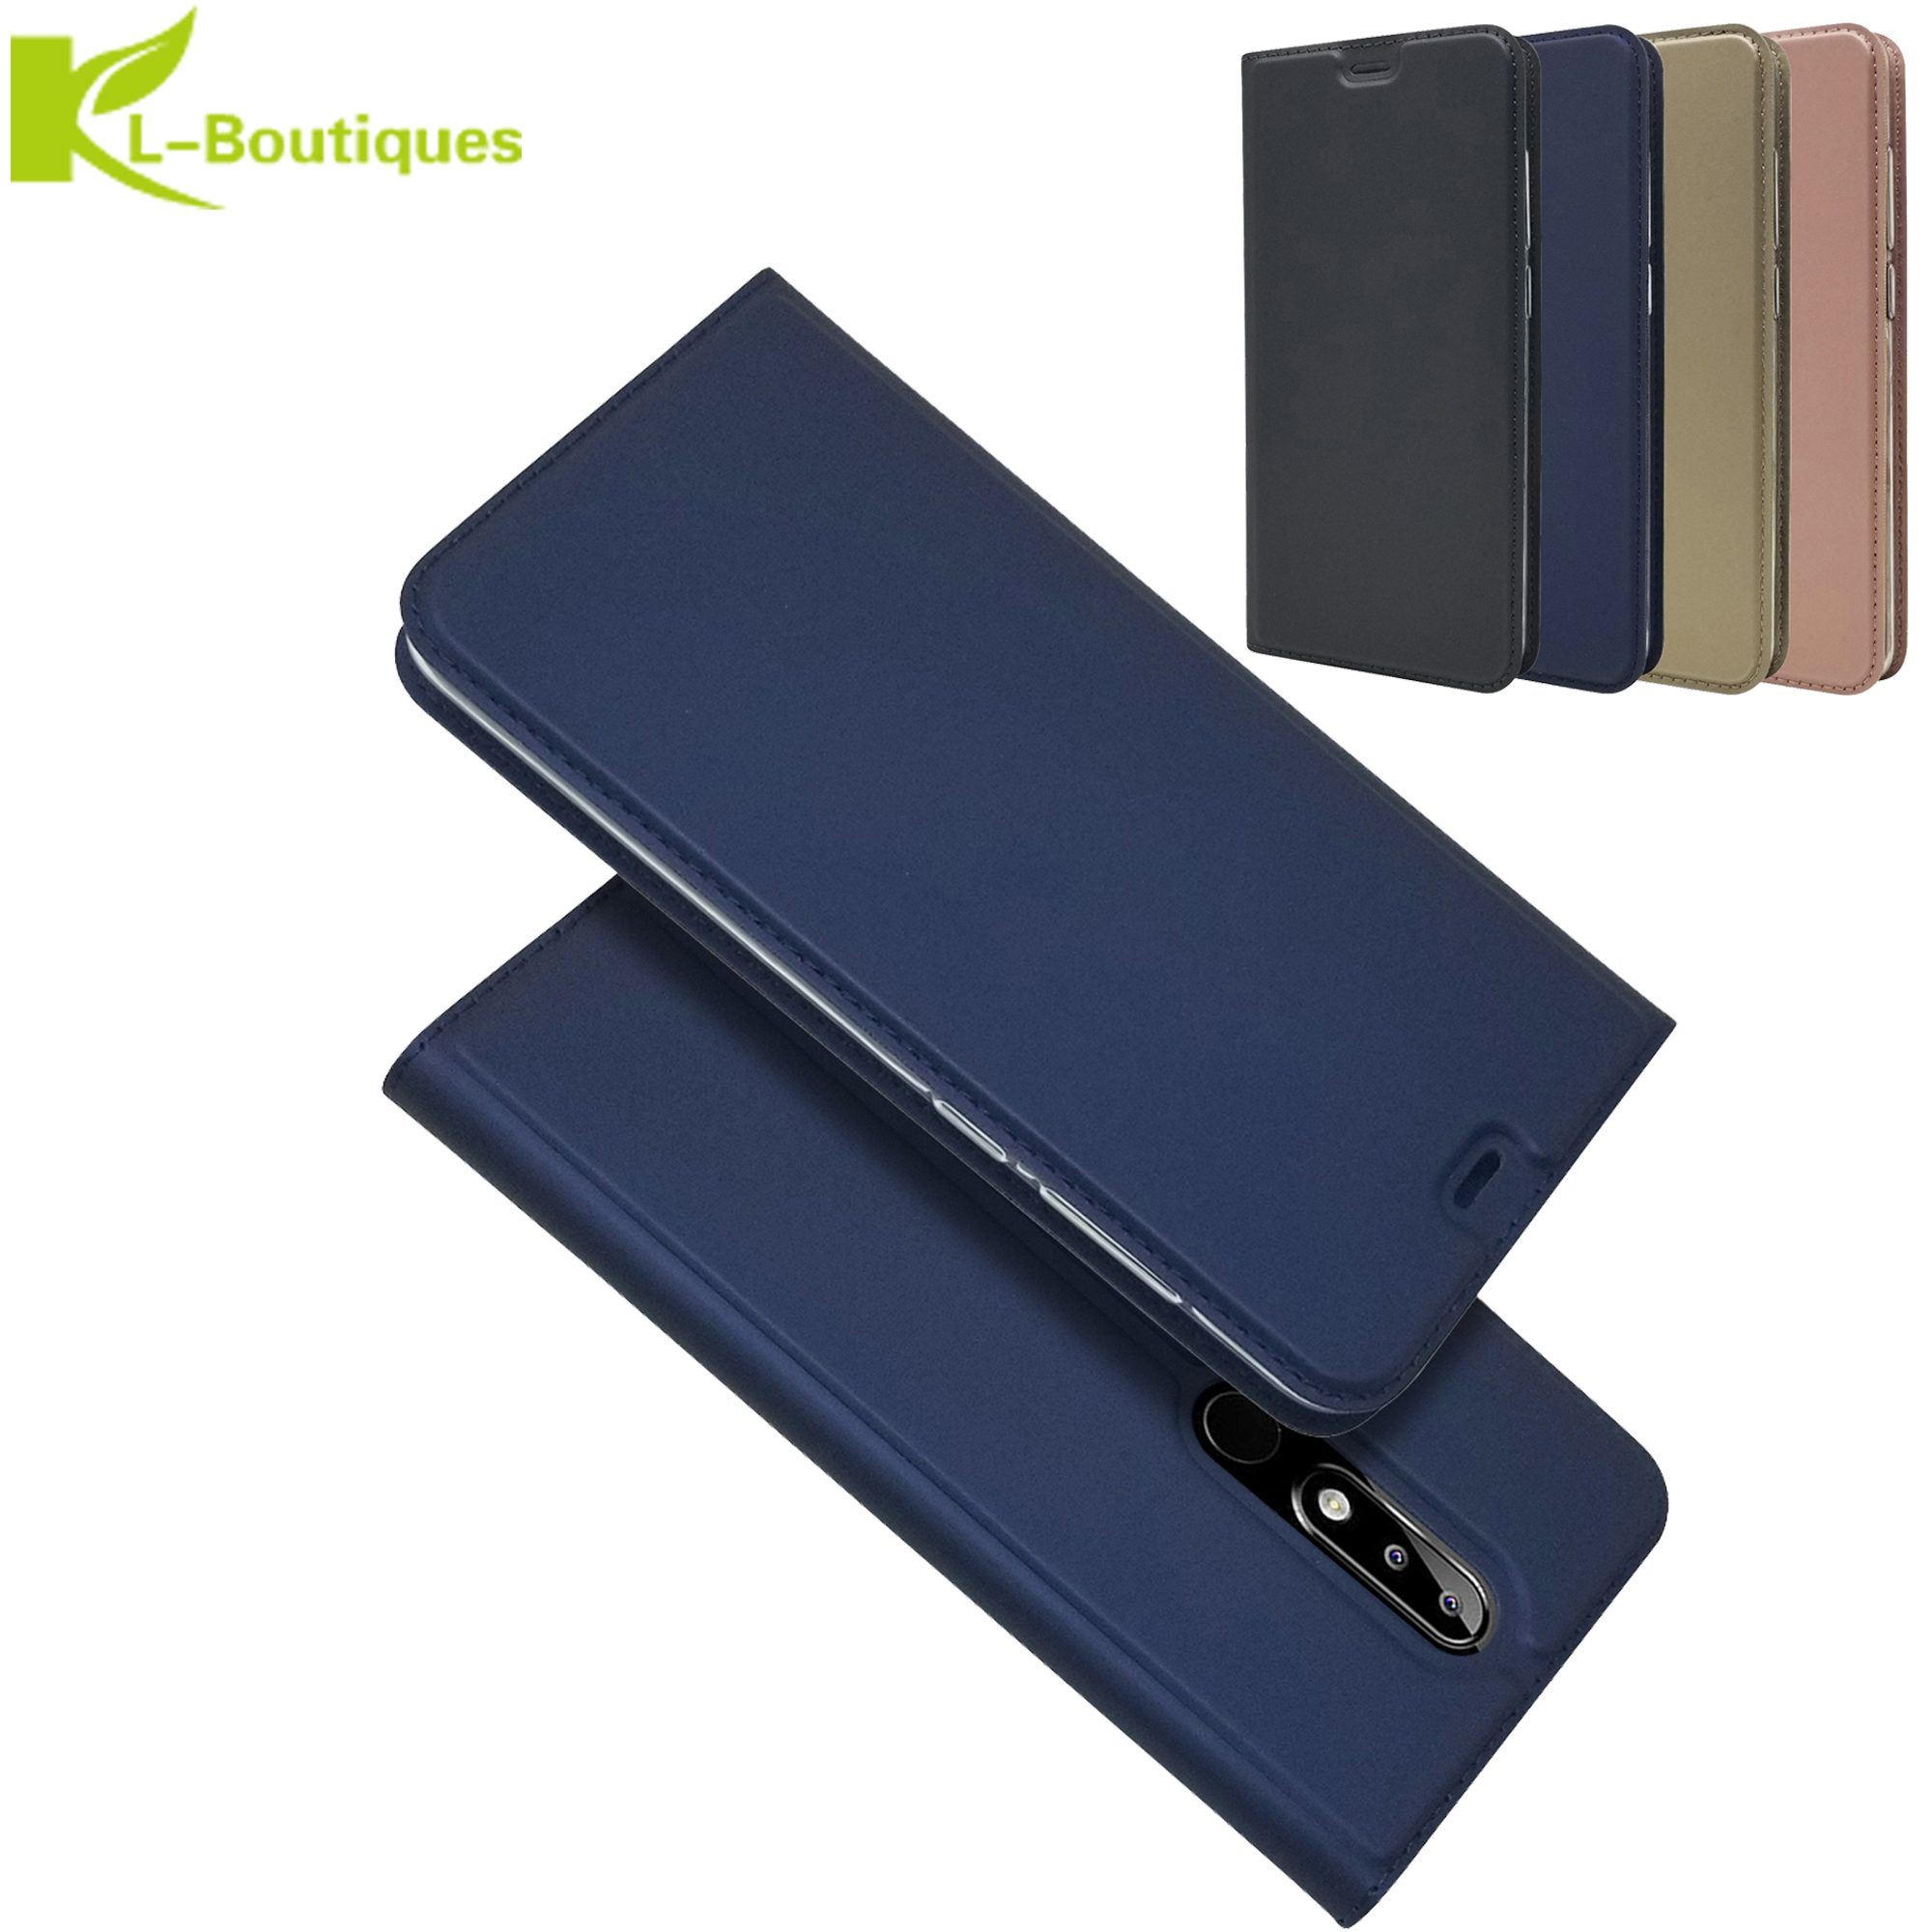 Slim Magnetic Case Coque For <font><b>Nokia</b></font> <font><b>5</b></font> <font><b>TA</b></font>-<font><b>1053</b></font> <font><b>TA</b></font>-1024 cover For <font><b>Nokia</b></font> <font><b>5</b></font>.1 Plus X5 <font><b>TA</b></font>-1109 shell Fundas for <font><b>Nokia</b></font> <font><b>5</b></font>.1 Phone cases image